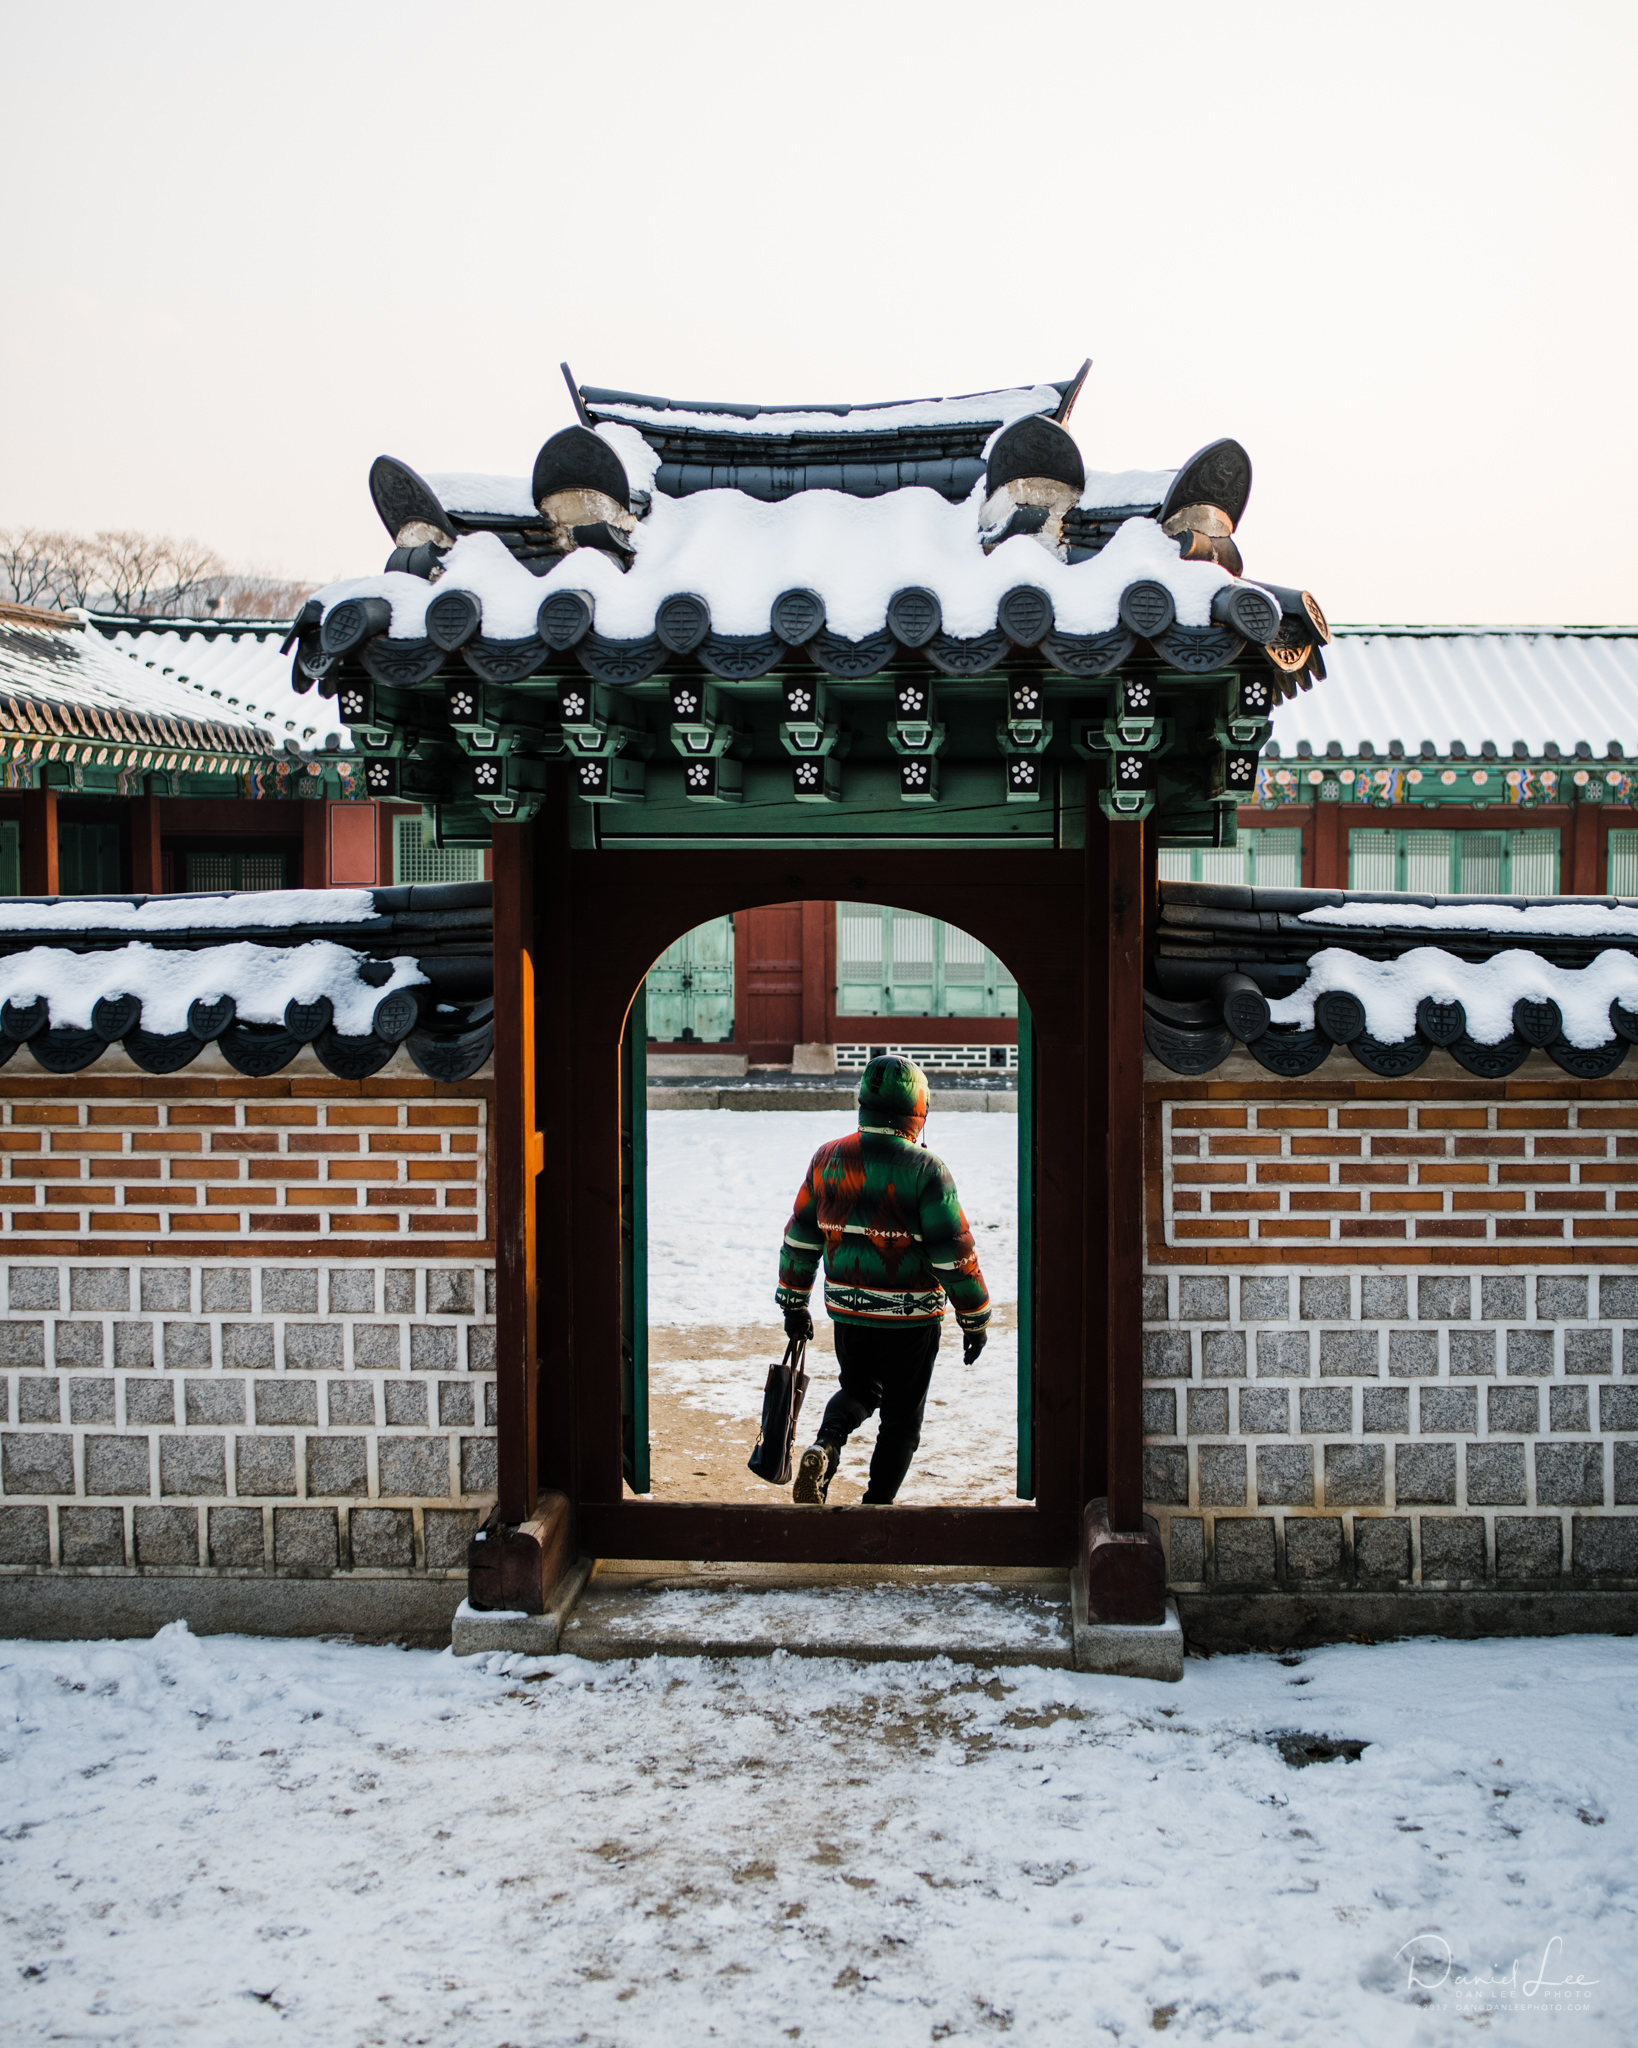 A visitor dressed in the right colors for Gyeongbukgung. Seoul, Republbic of Korea. Photo by Daniel Lee.